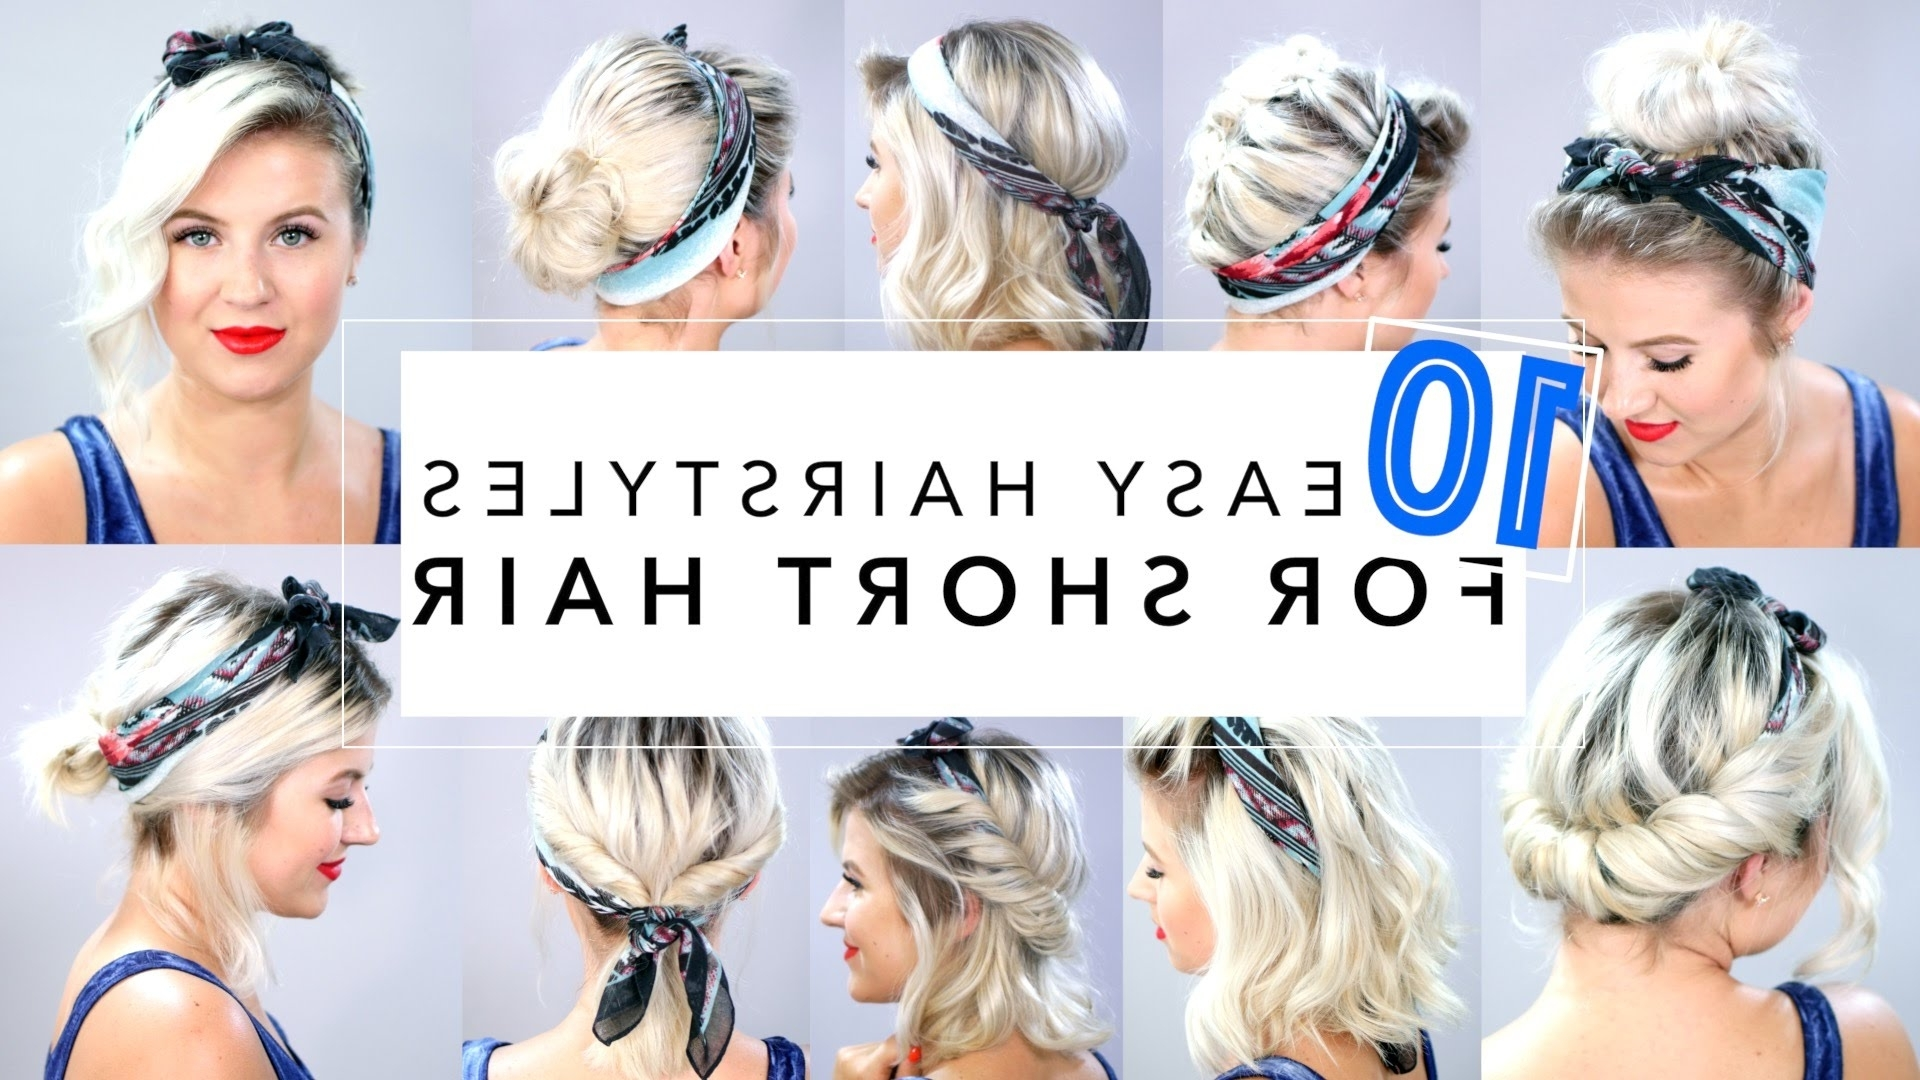 10 Easy Hairstyles For Short Hair With Headband   Milabu – Youtube With Regard To Most Recent Pixie Hairstyles With Headband (View 10 of 15)